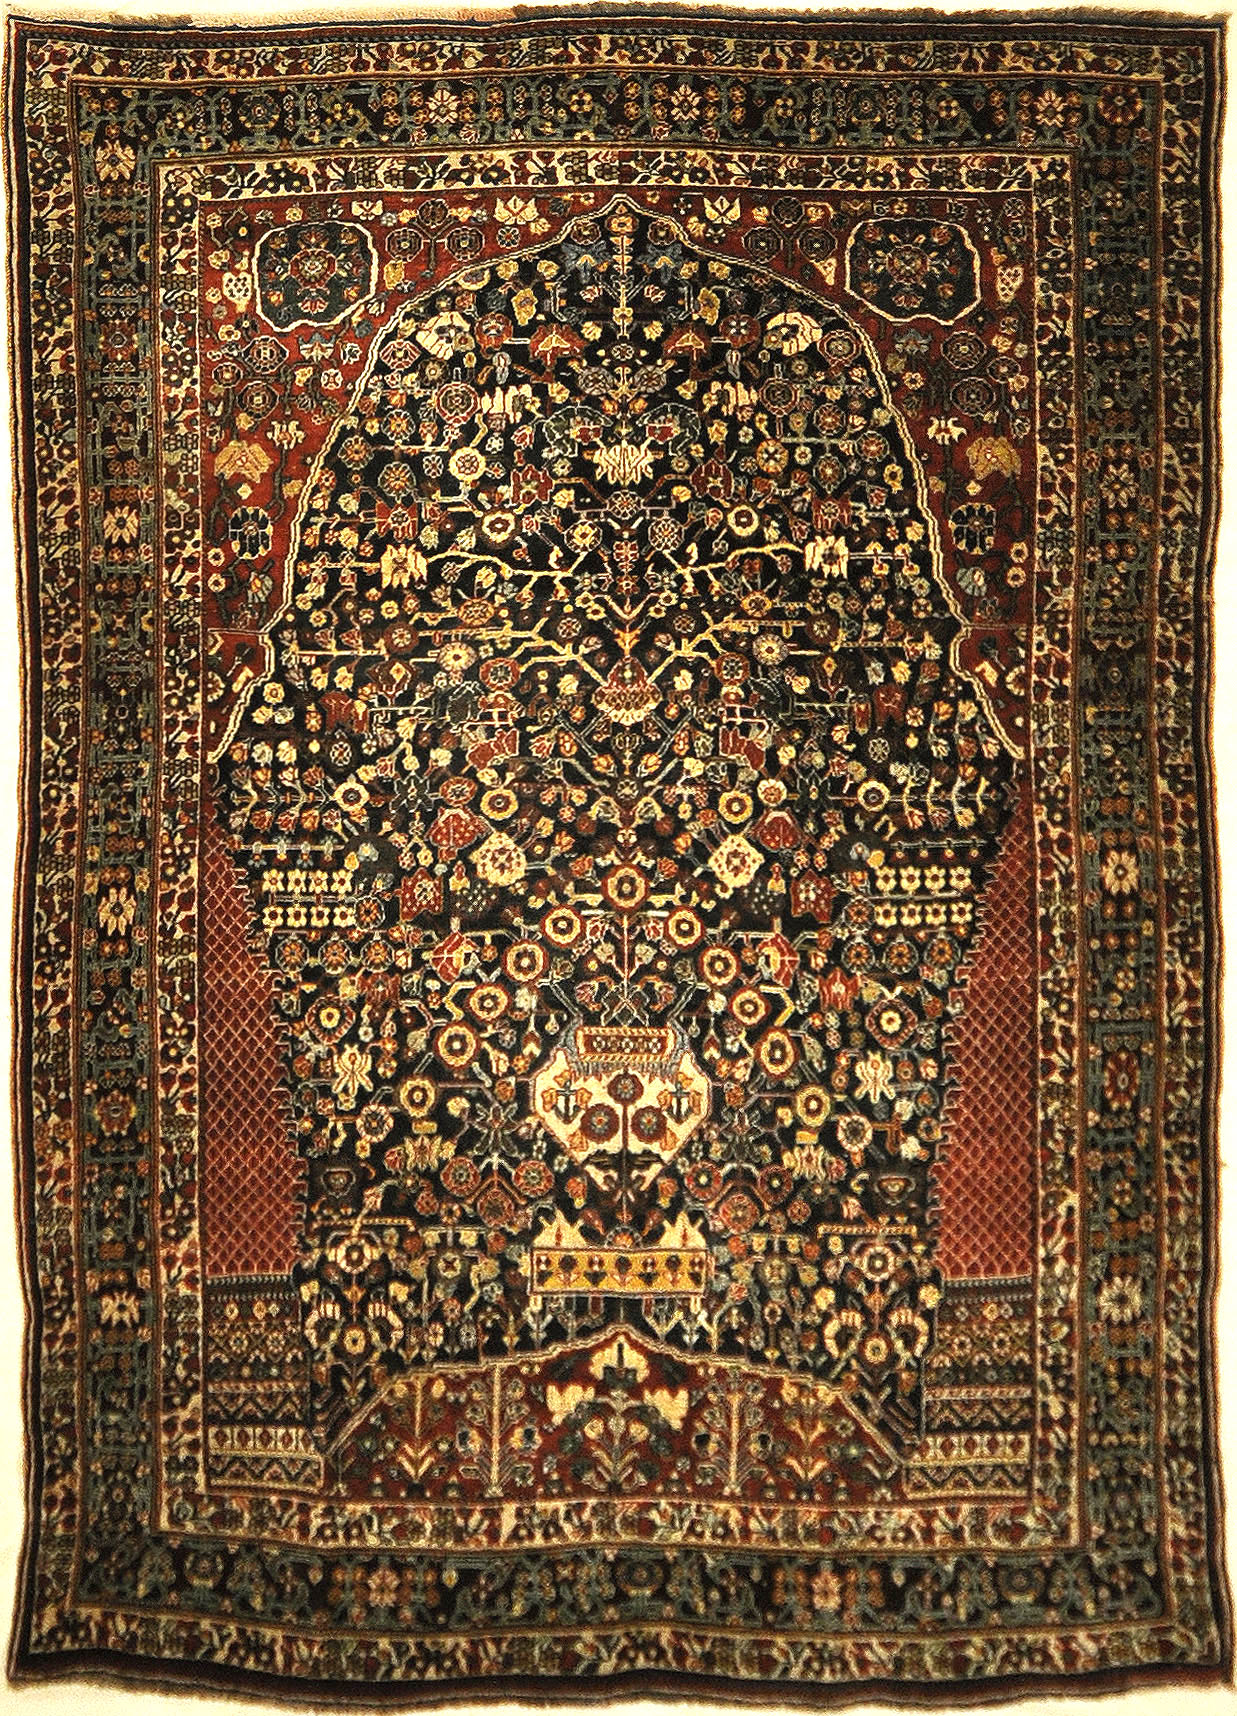 Very Rare Antique Qashqai 1001 Flowers Rug. A piece of genuine authentic antique woven carpet art sold by the Santa Barbara Design Center, Rugs and More.